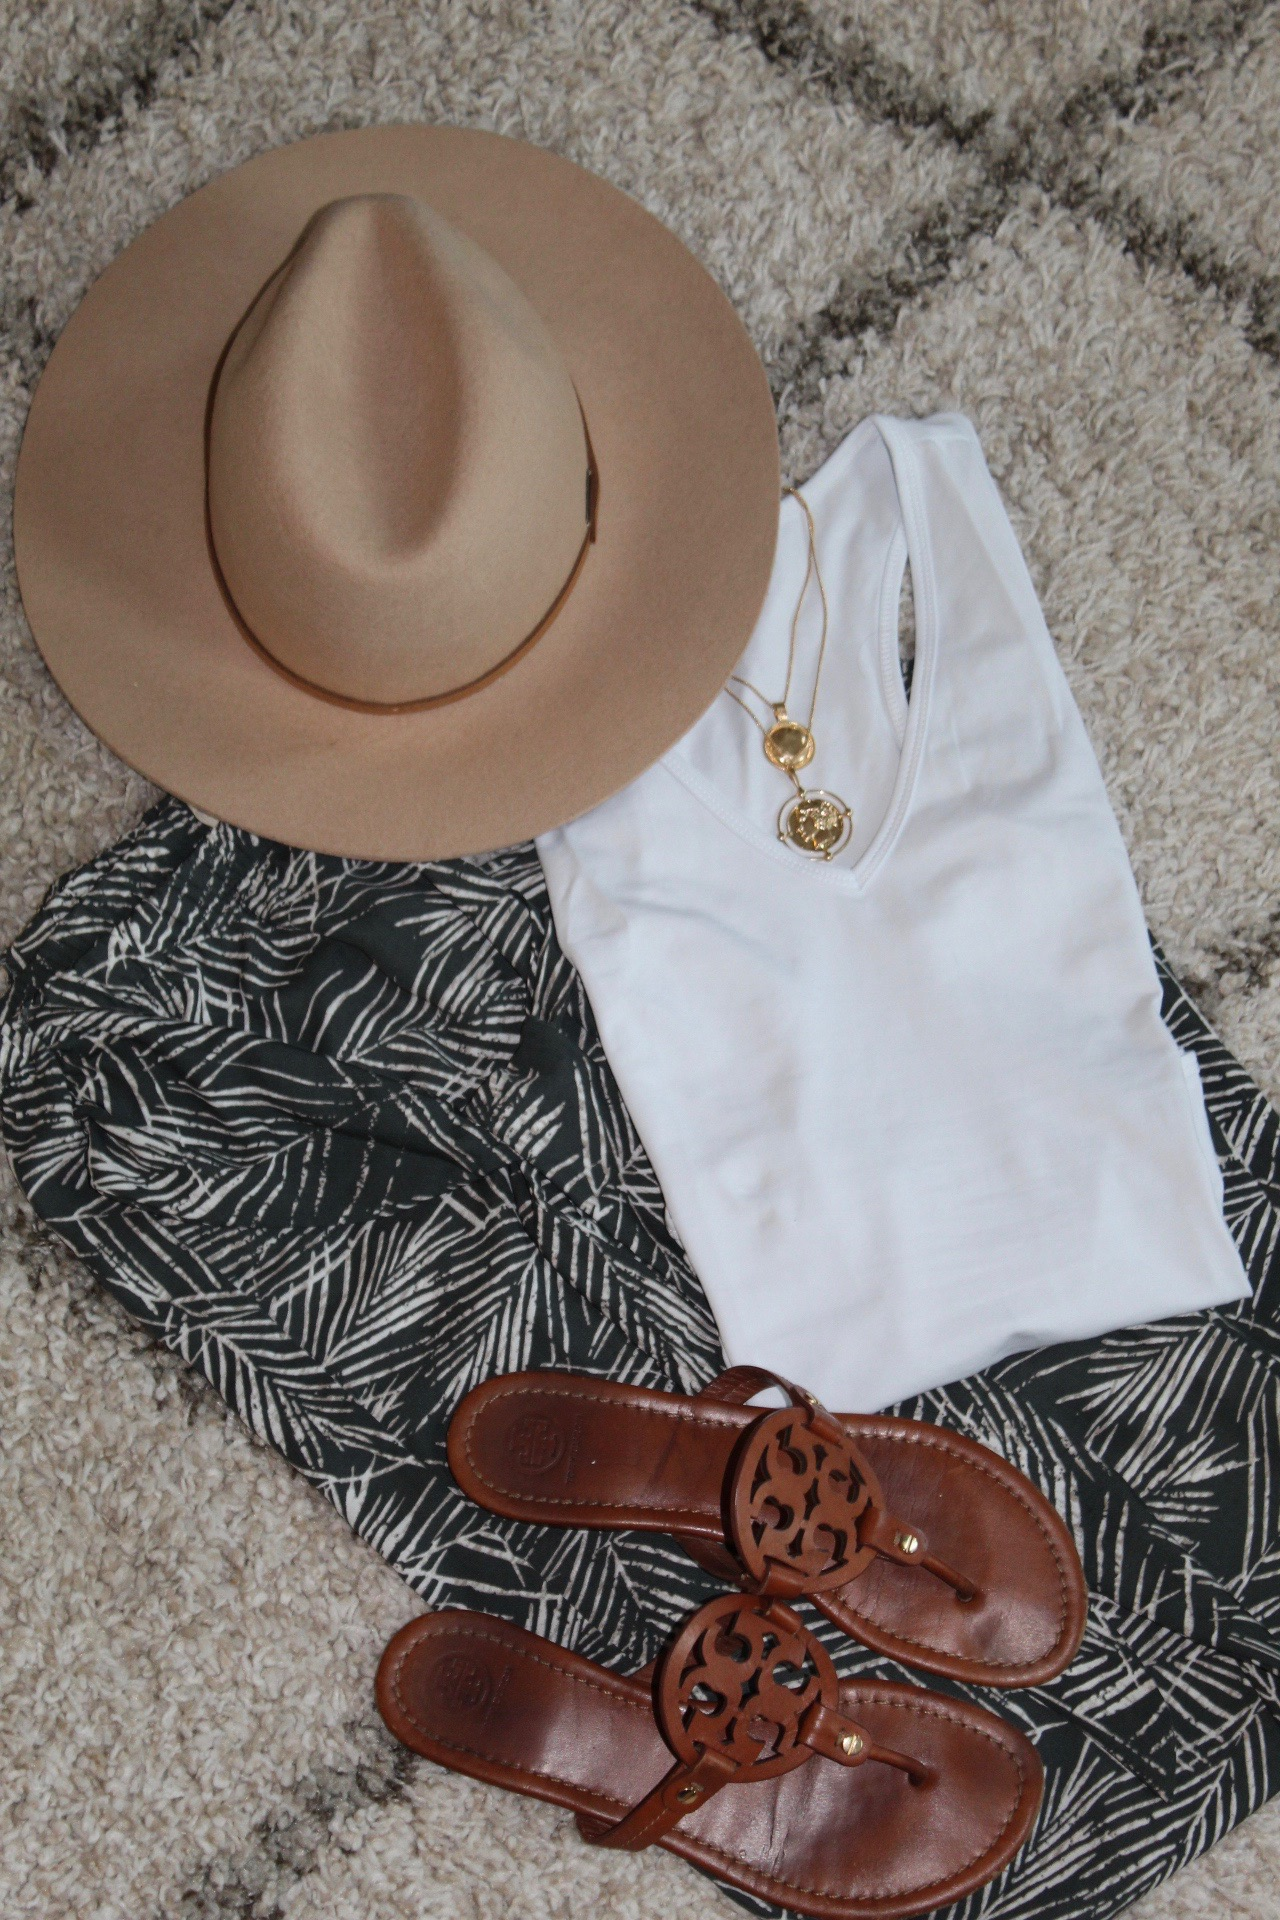 Day outfit #2